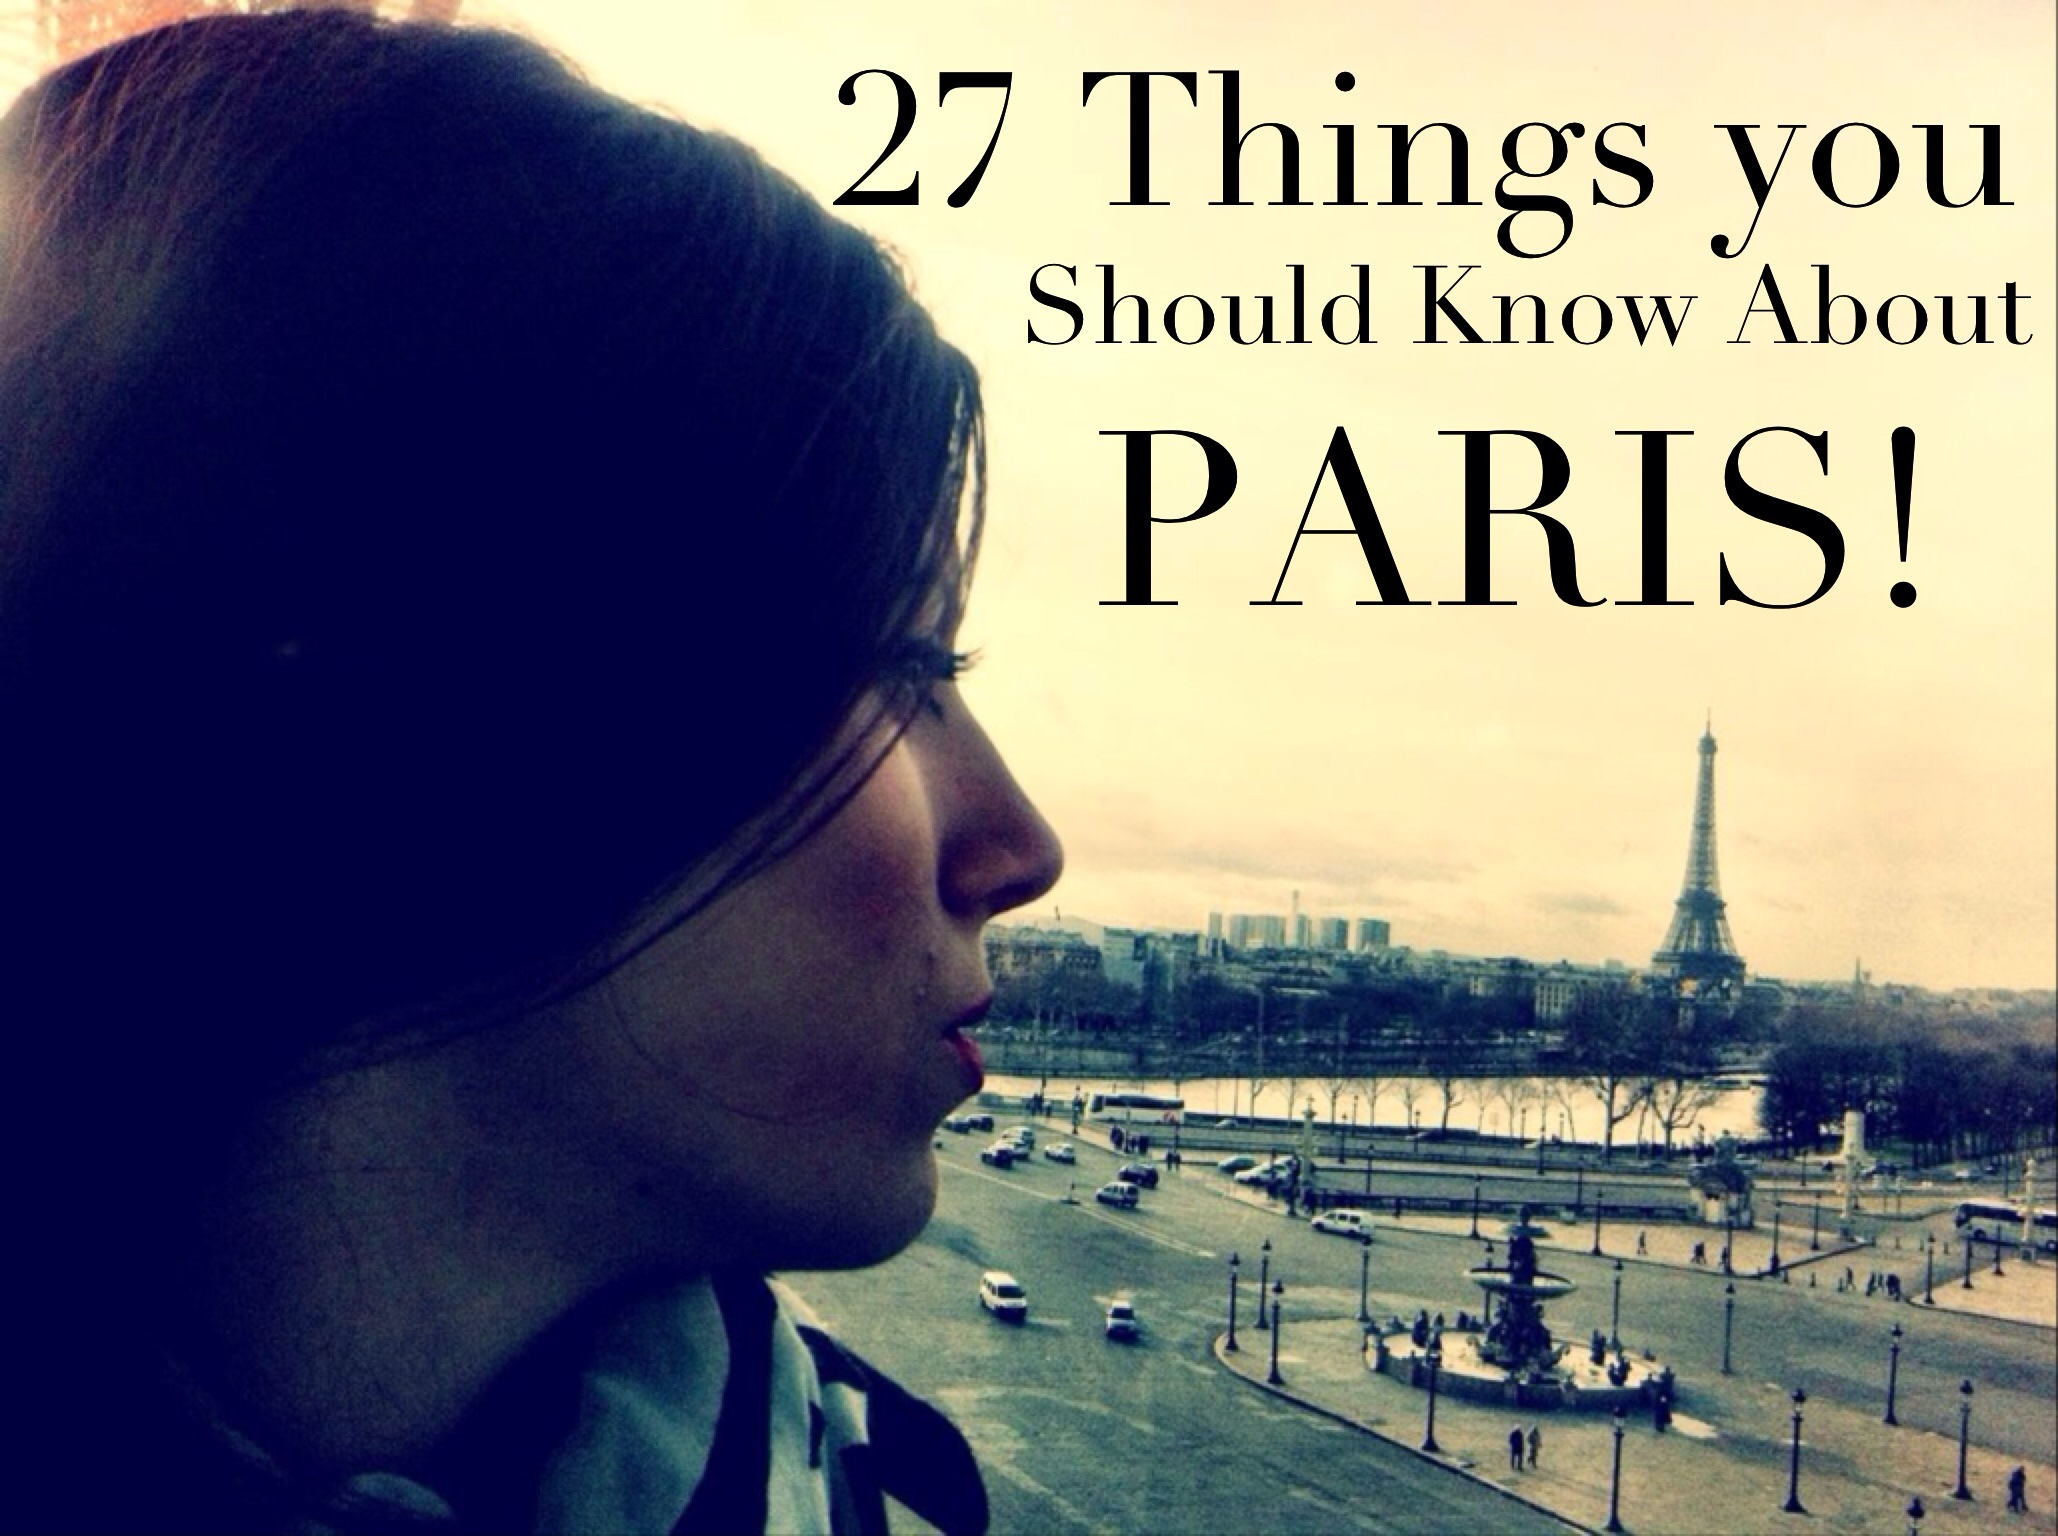 27 Things You Should Know About Paris